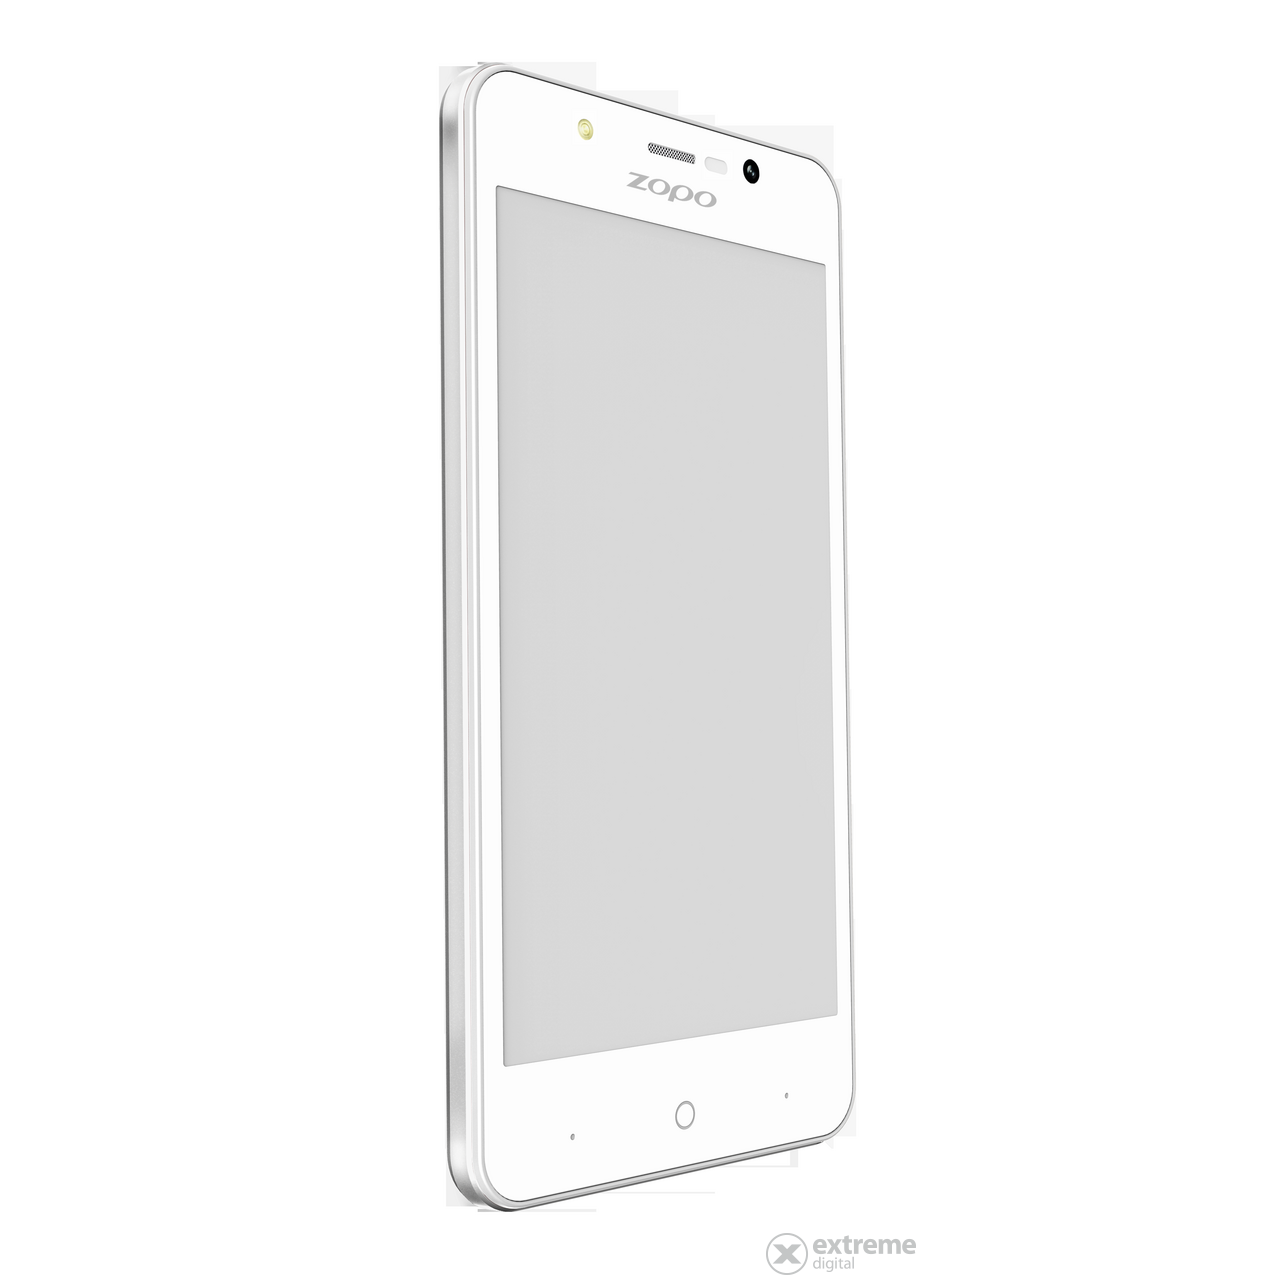 zopo-350-color-e-dual-sim-kartyafuggetlen-okostelefon-white-android_aa0b0a83.png